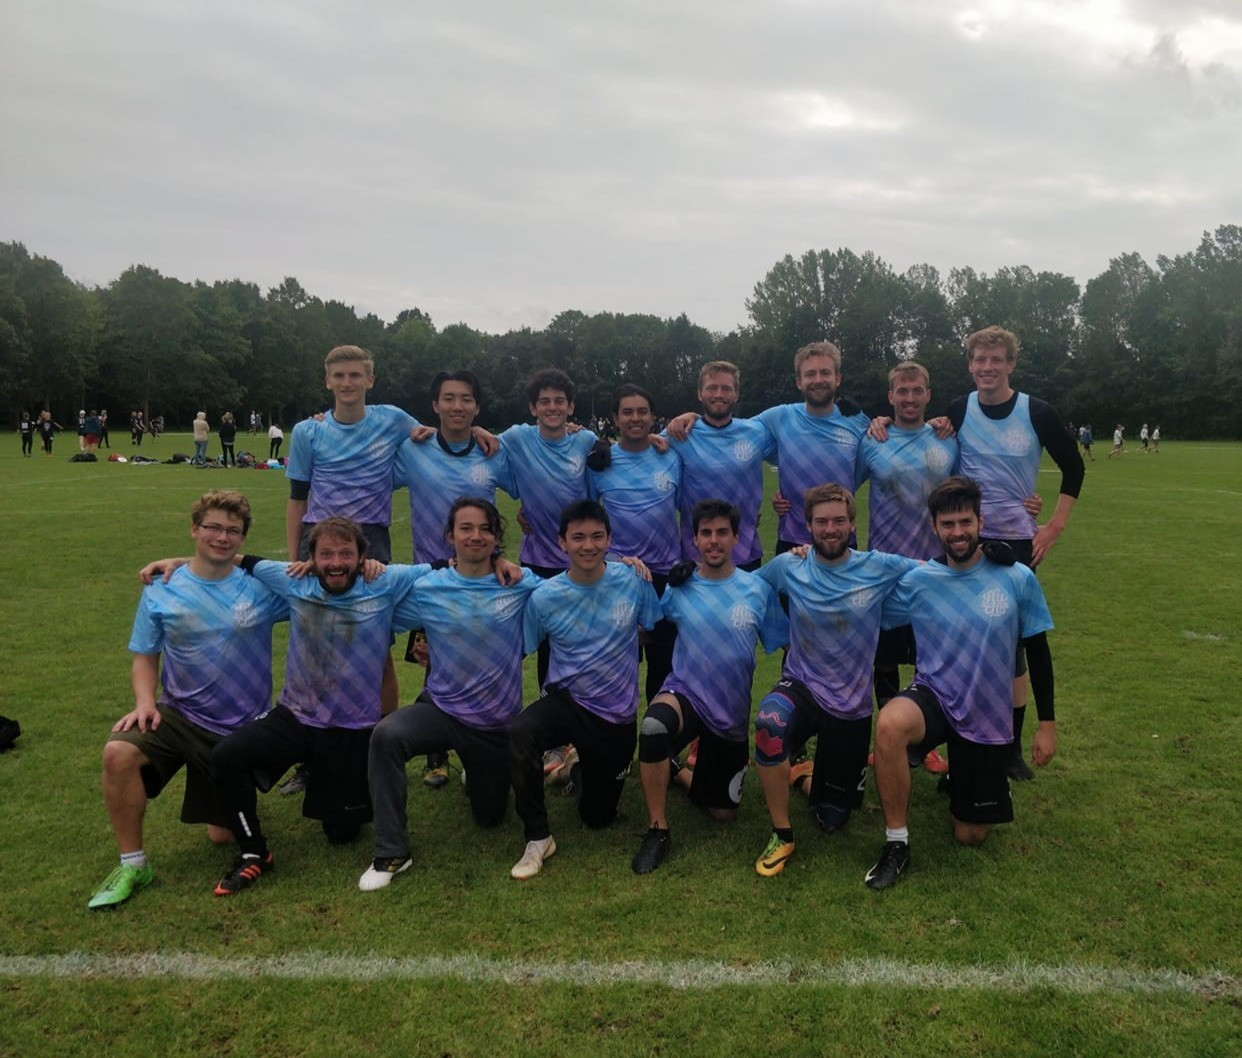 DM Outdoor Nationals 2019